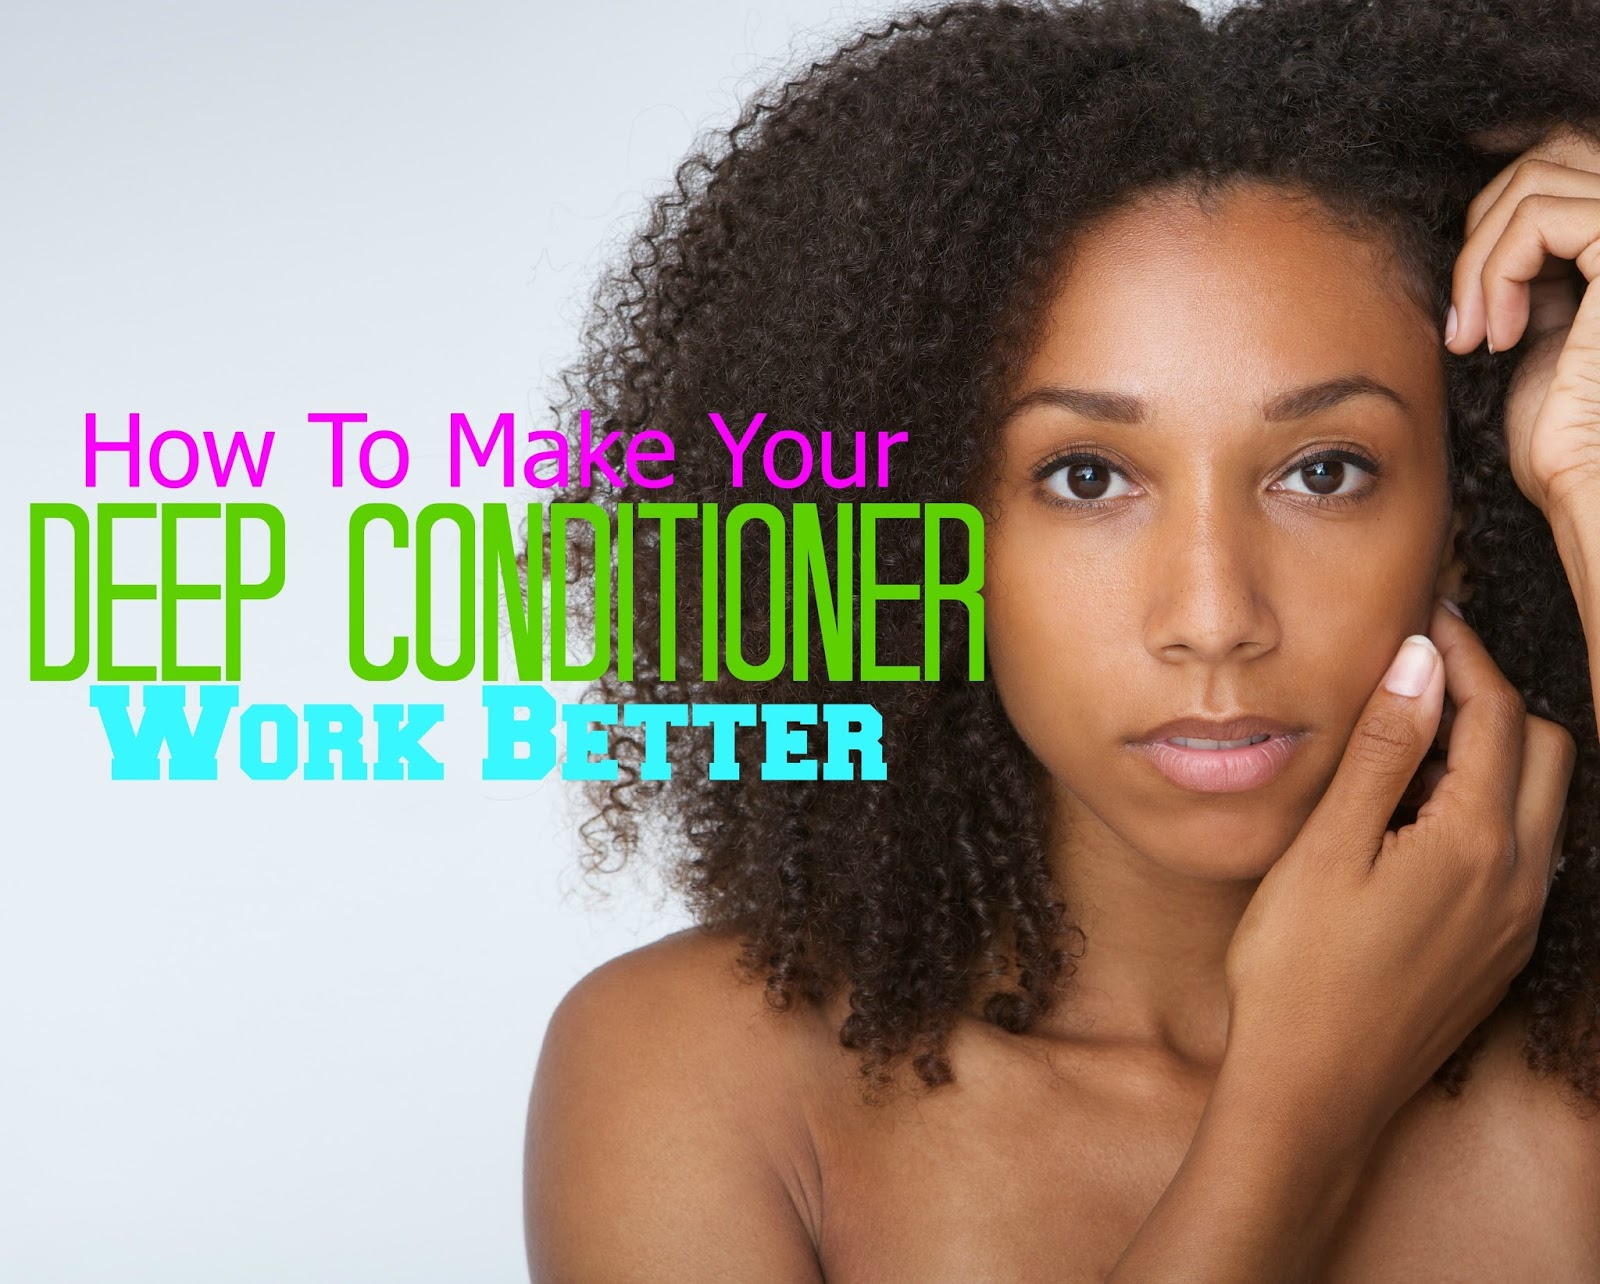 How To Make Your Deep Conditioner Work Better